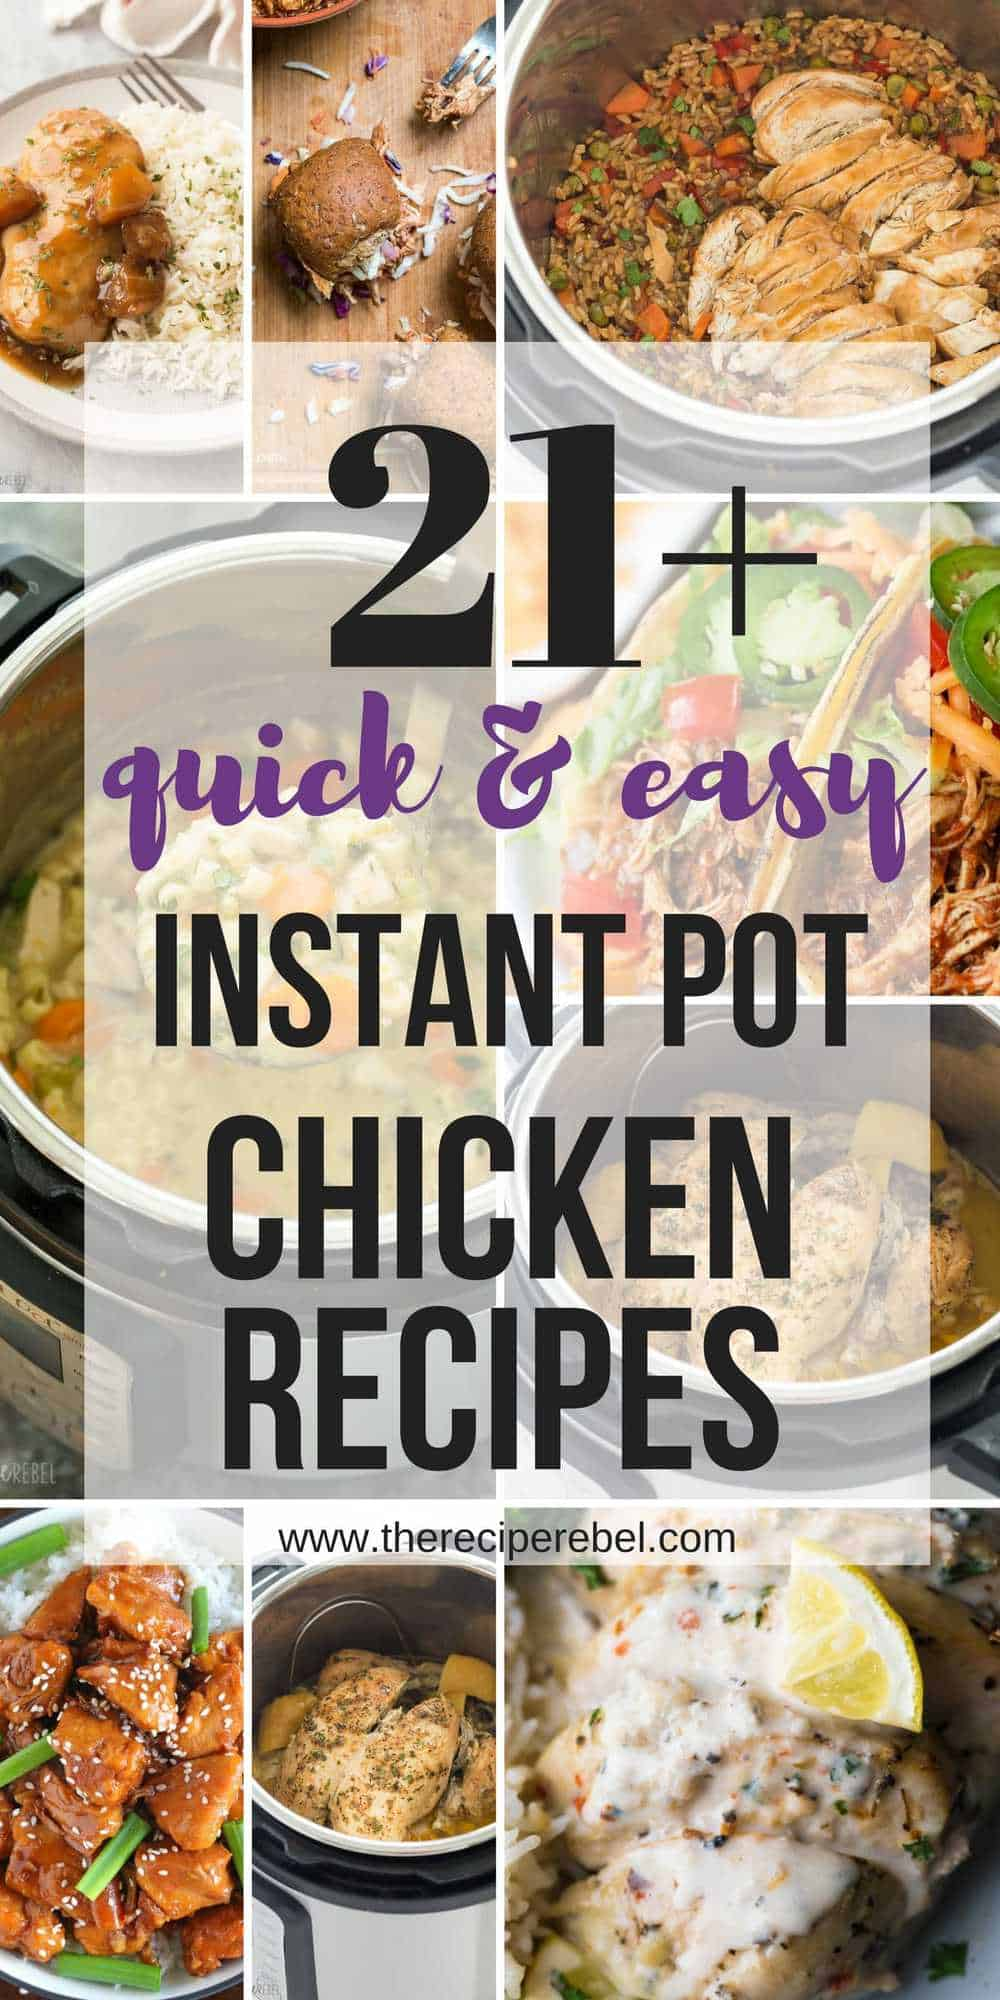 These easy Instant Pot Chicken Recipes come together SO quickly, you can have a homemade dinner in no time! From Instant Pot whole chickens to chicken breasts to chicken thighs, there's something for everyone. Chicken tacos, chicken soups, and one pot meals! #instantpot #instantpotrecipes #pressurecooker #chicken #chickenrecipe #dinner